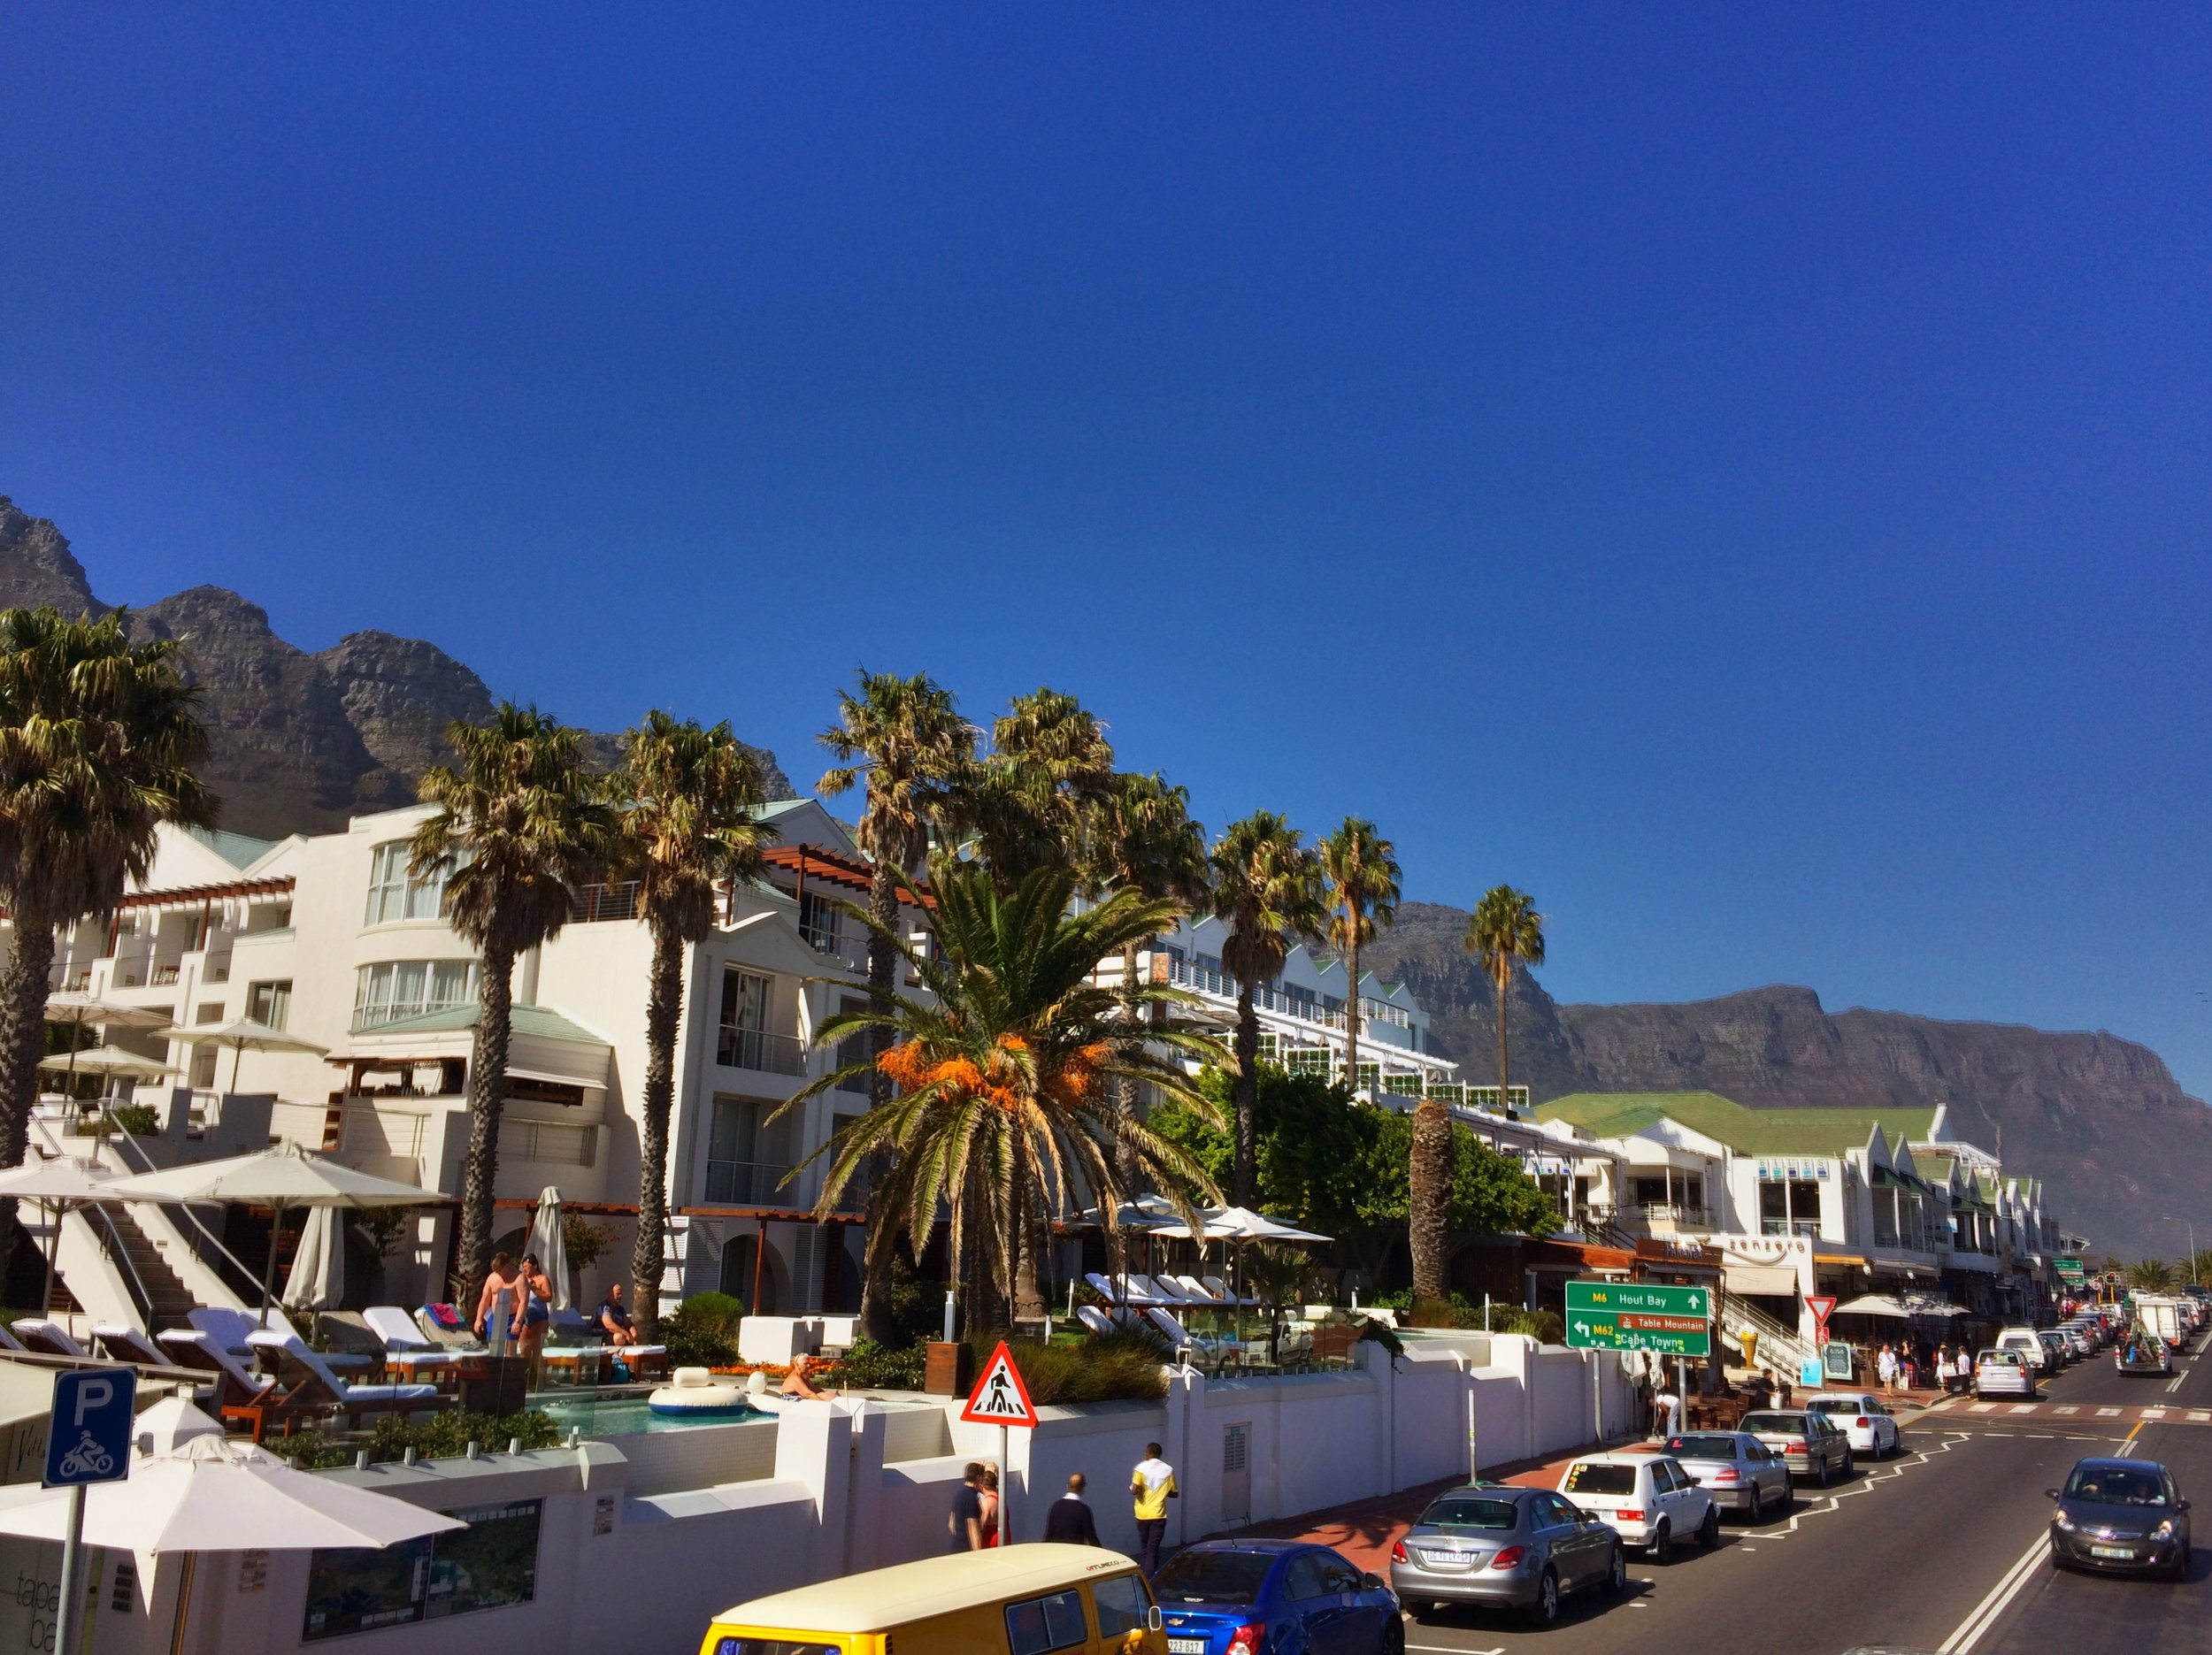 Camps Bay - an affluent area of Cape Town. Very beach community feel with stunning mountain scenery all around.